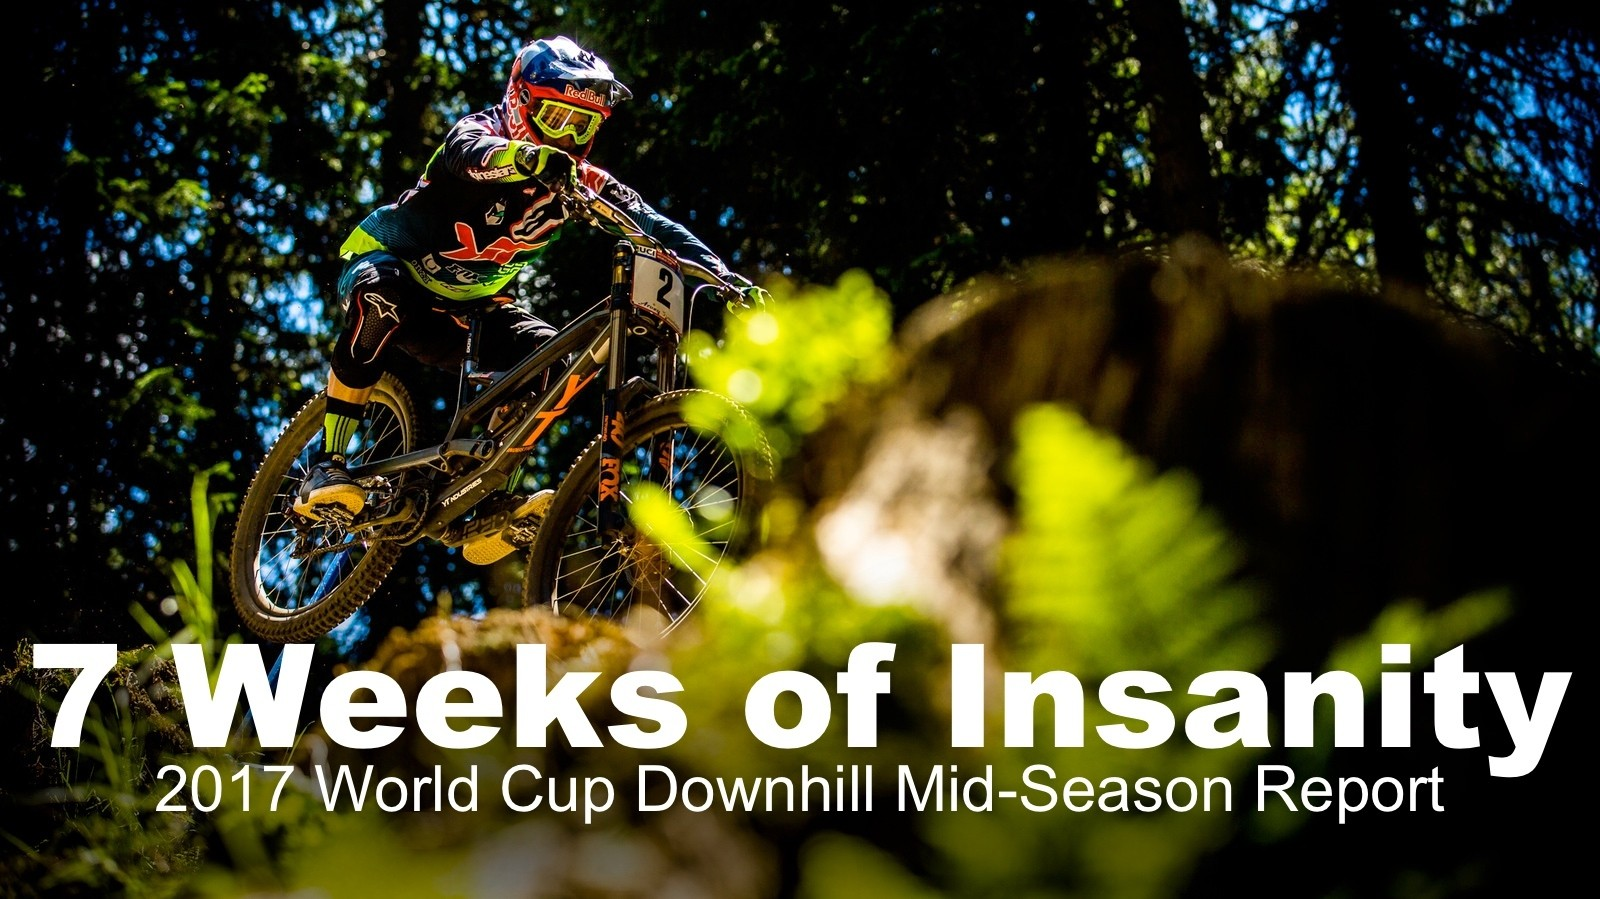 Seven Weeks of Insanity - 2017 World Cup Downhill Mid-Season Report